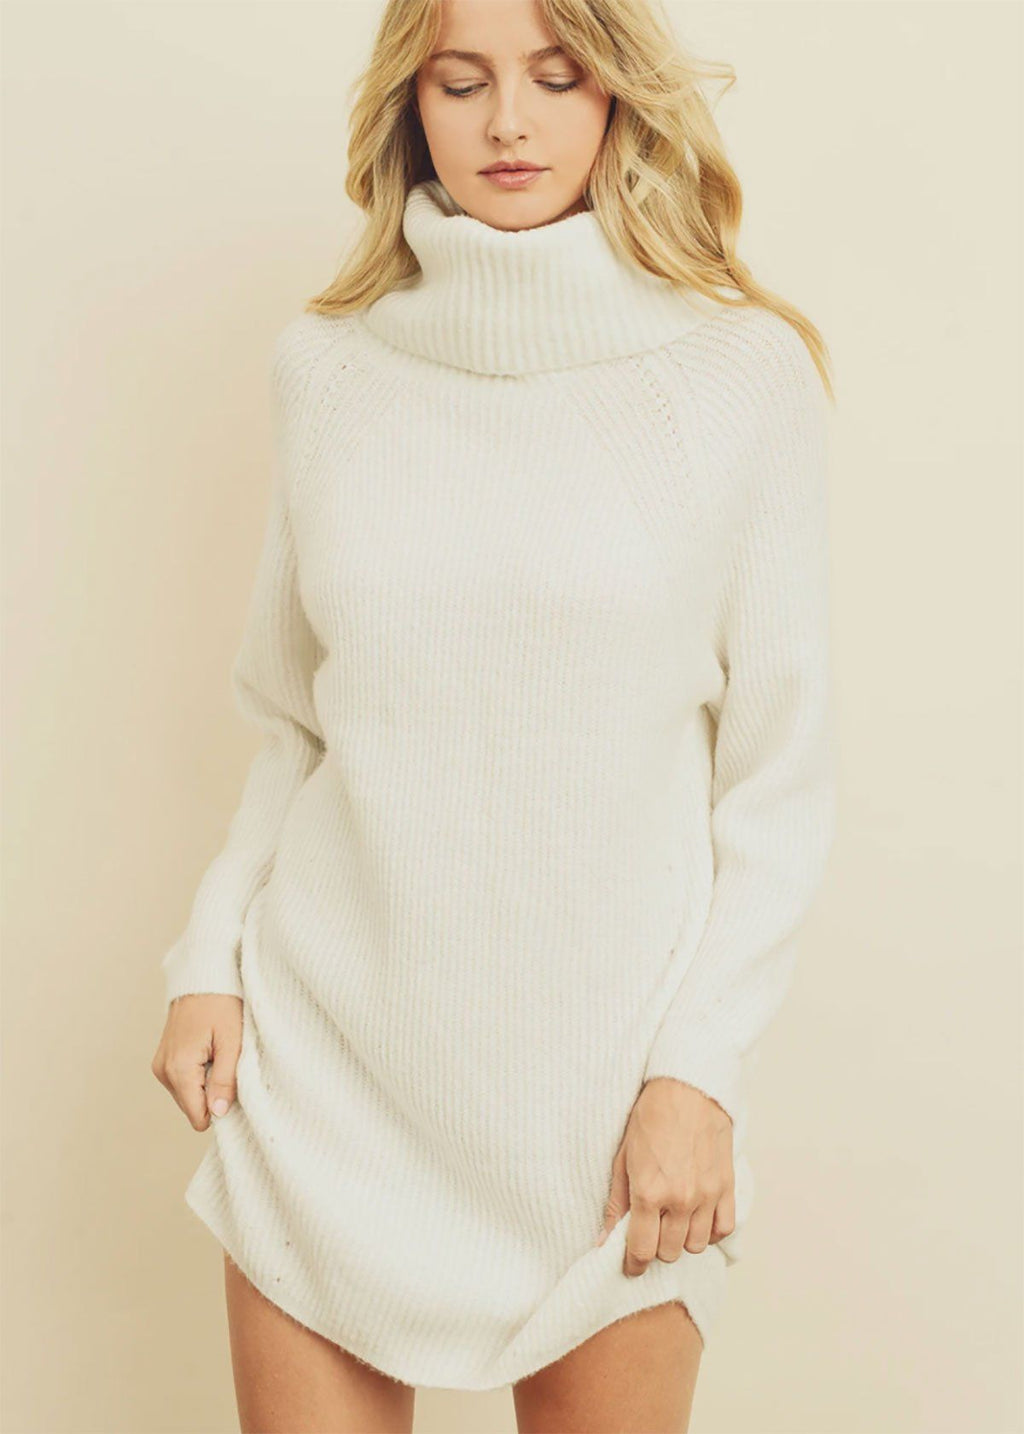 Ribbed Knit Turtleneck Dress - White